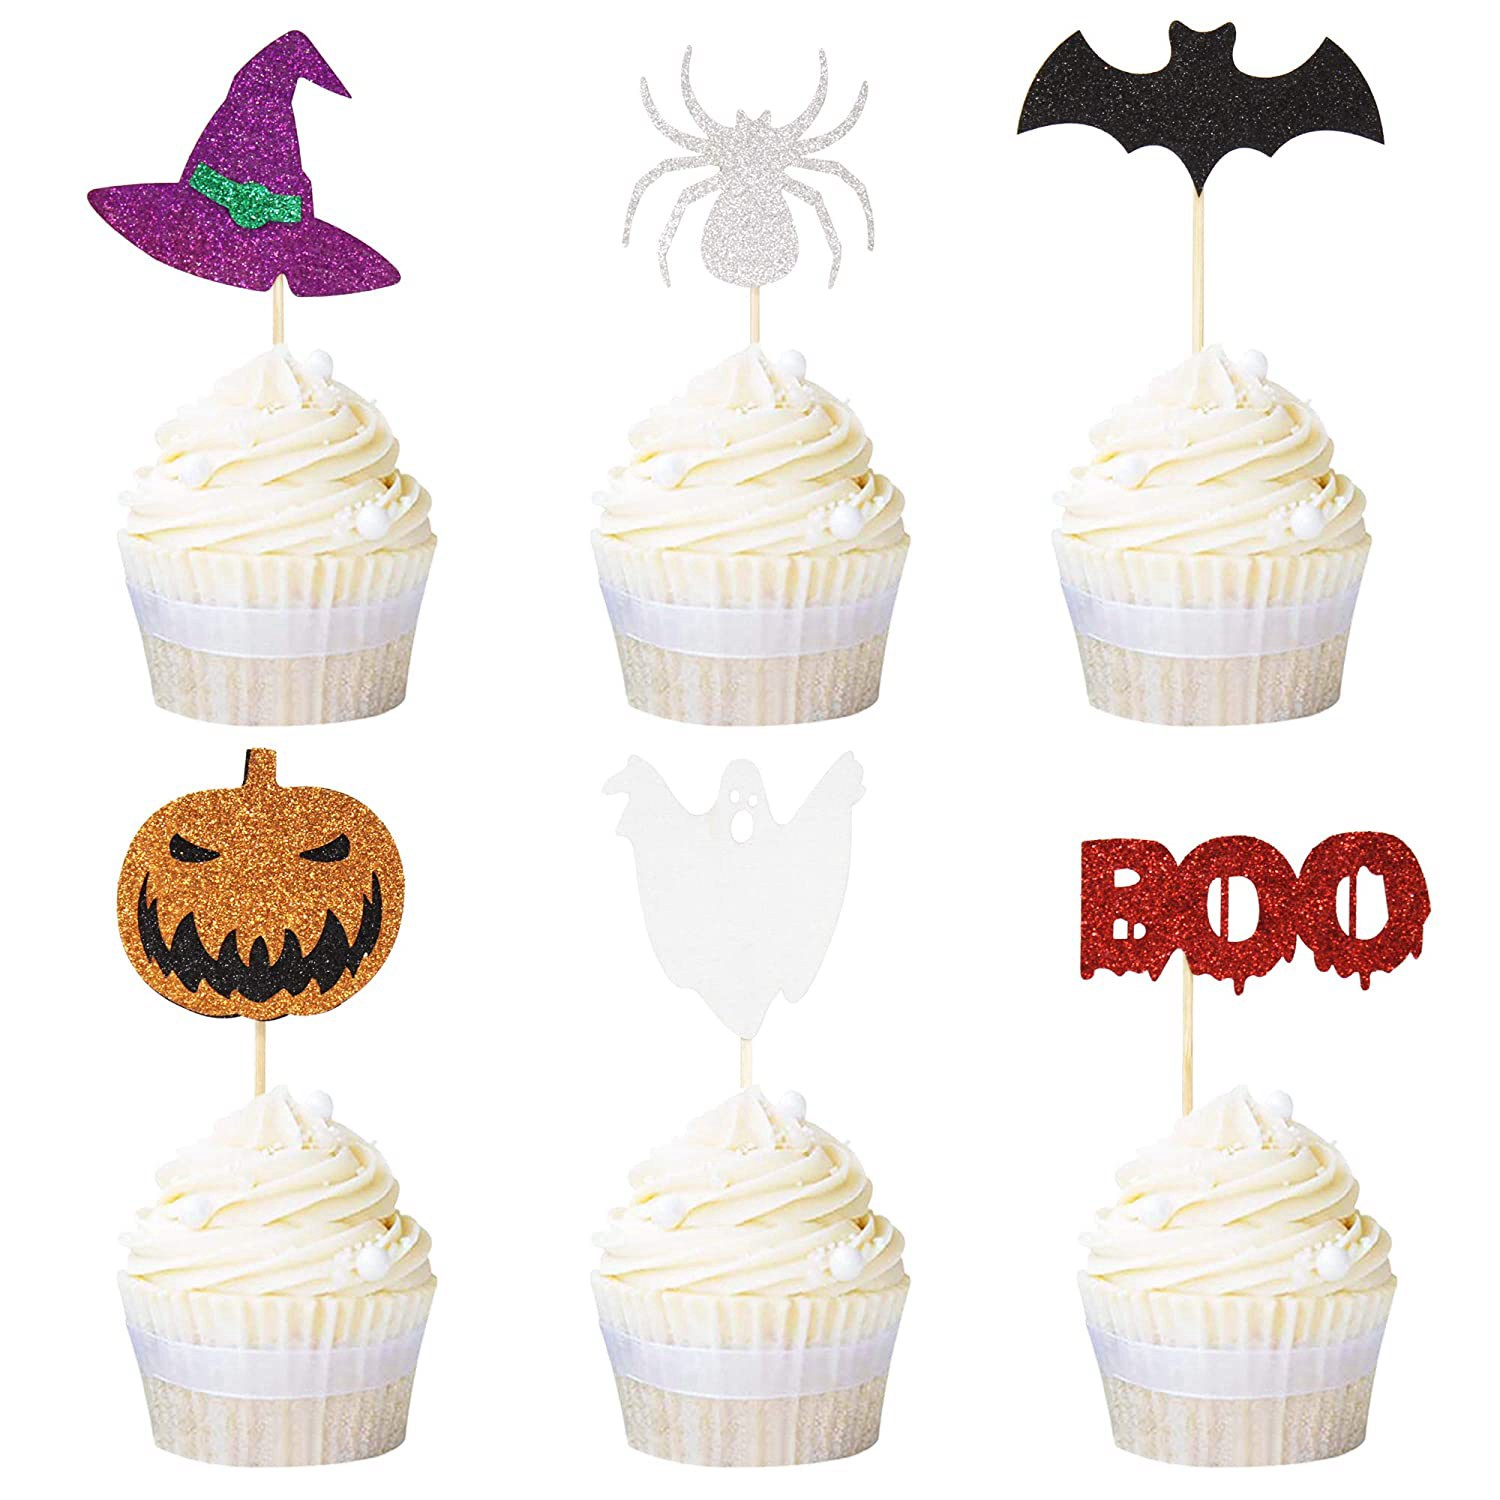 Newqueen 24 Pack Halloween Cupcake Toppers Witch Hat Bats Spider Pumpkin Ghost Mini Cupcake Picks Ha, 1